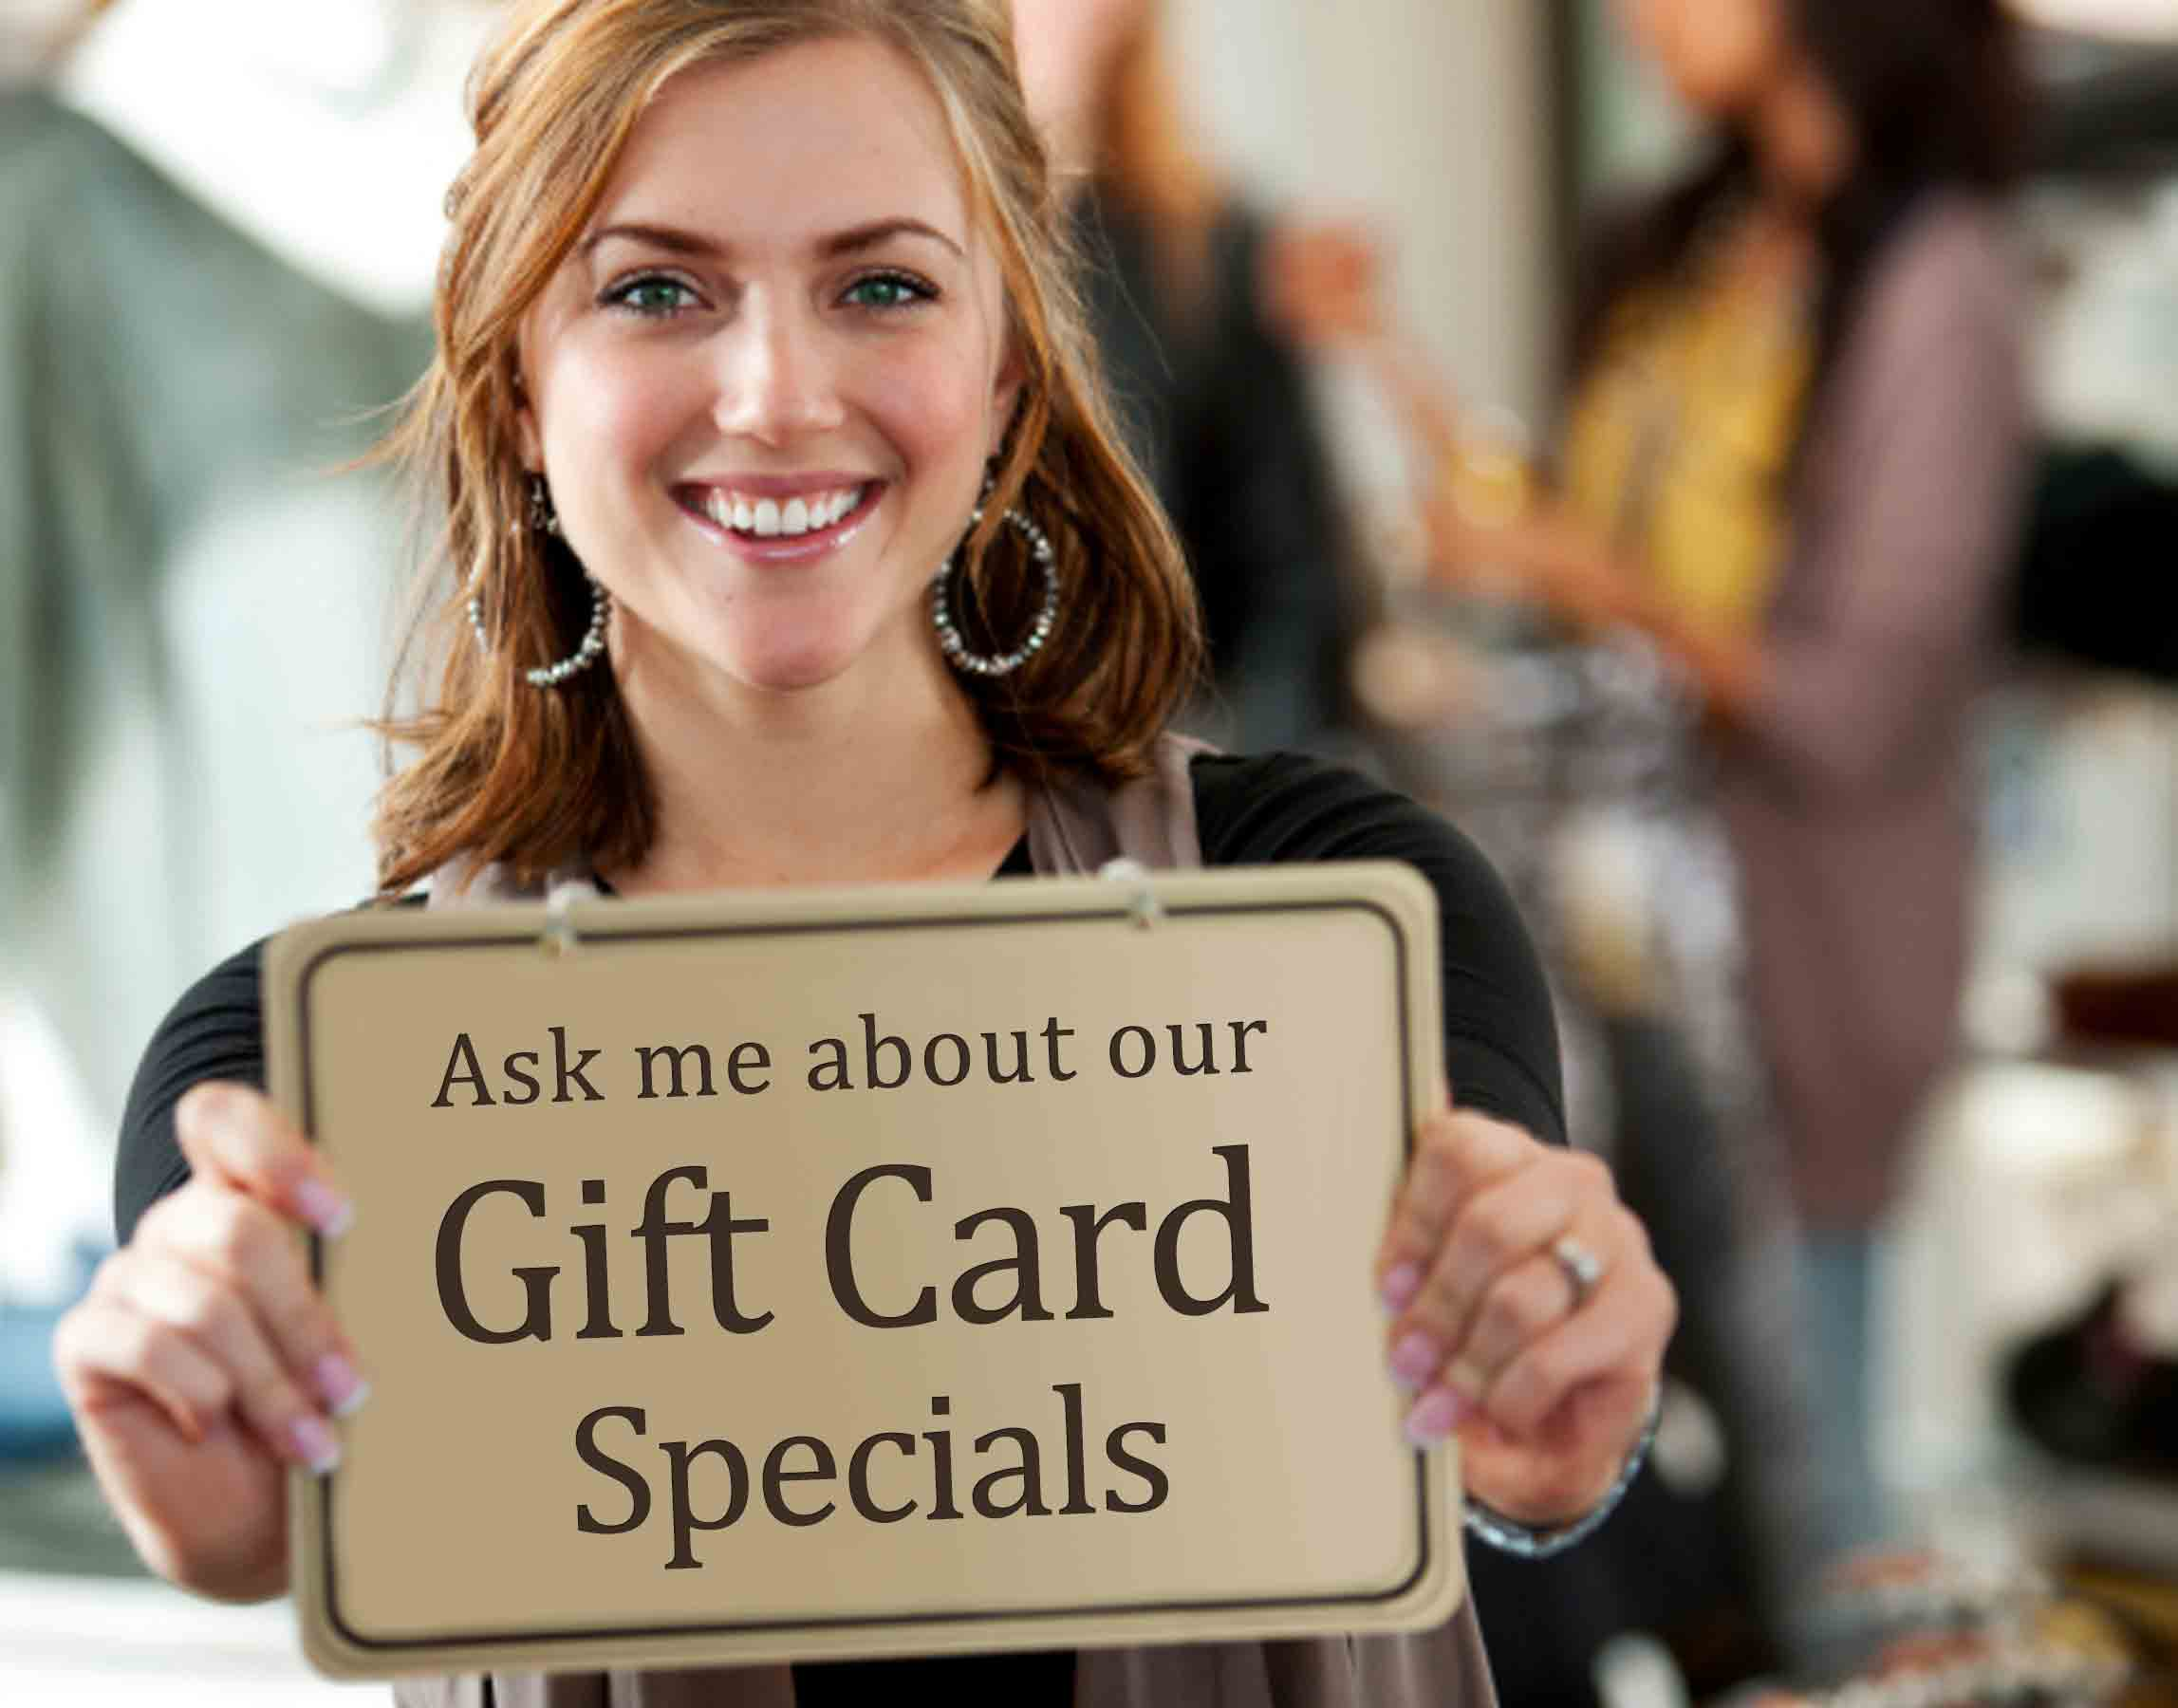 advertise gift card specials